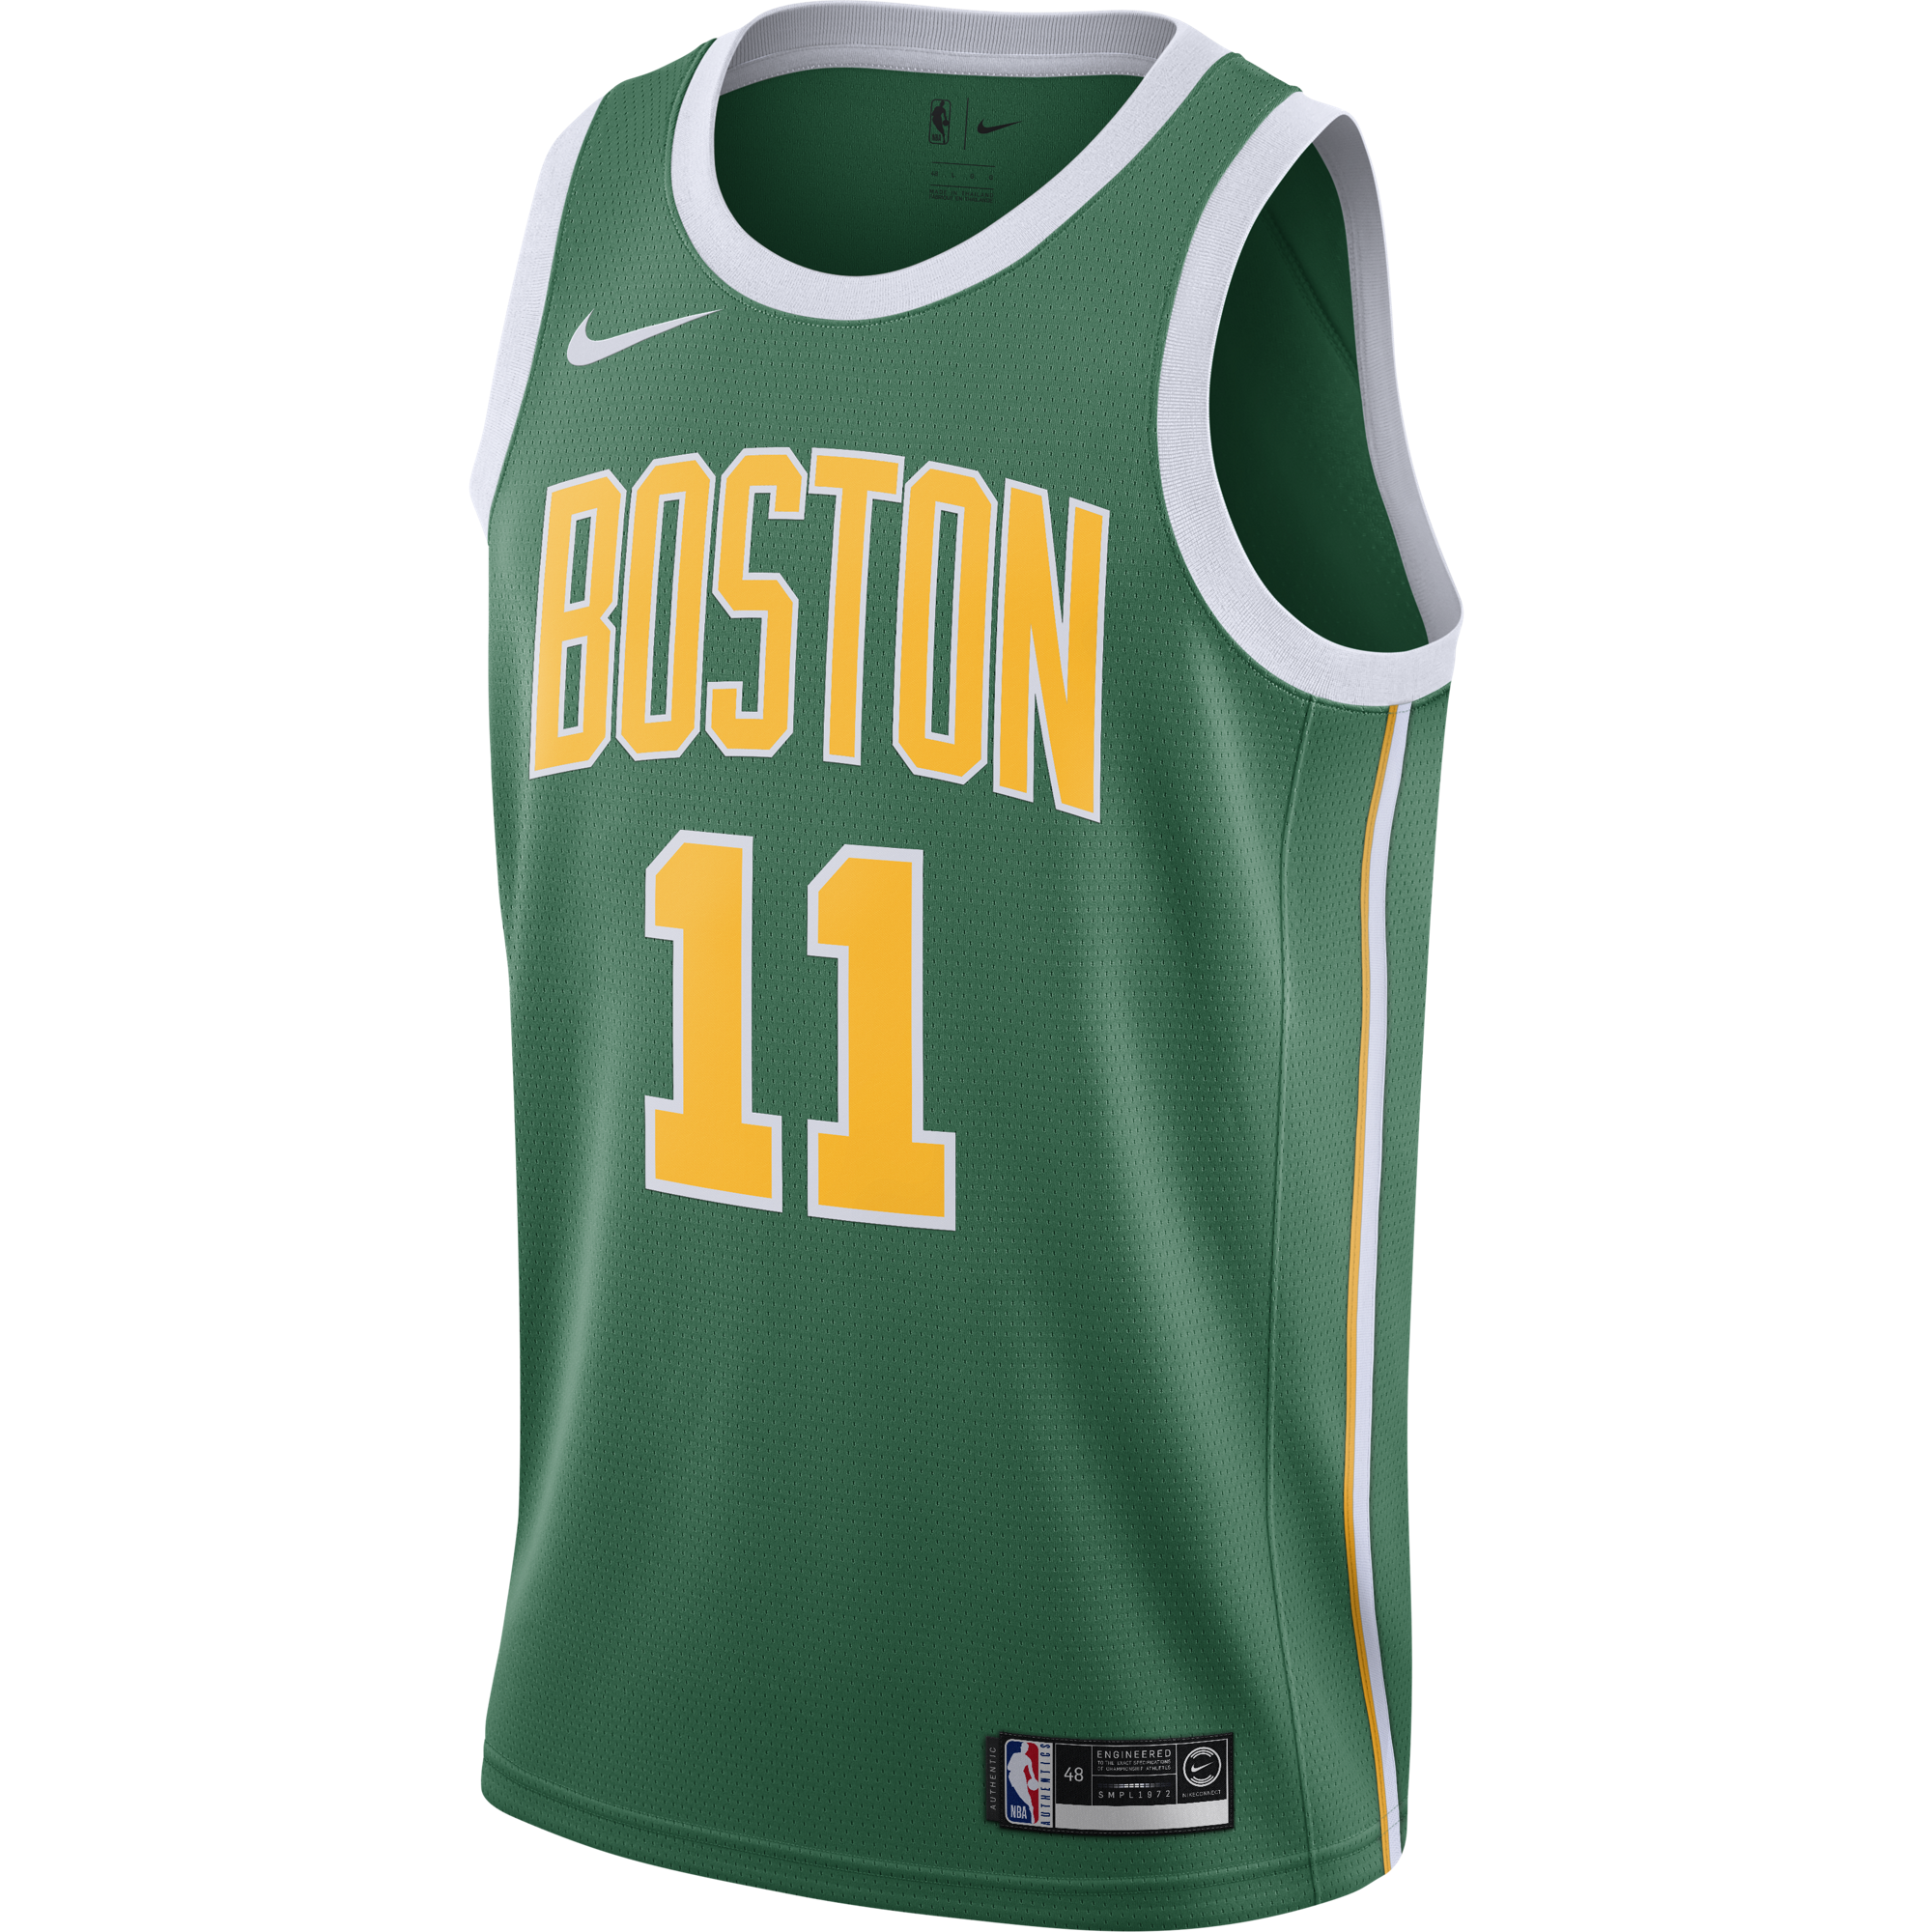 9fe61b5175cf Kyrie Irving Nike Swingman Jersey - Earned Edition for  109.99 Fanatics